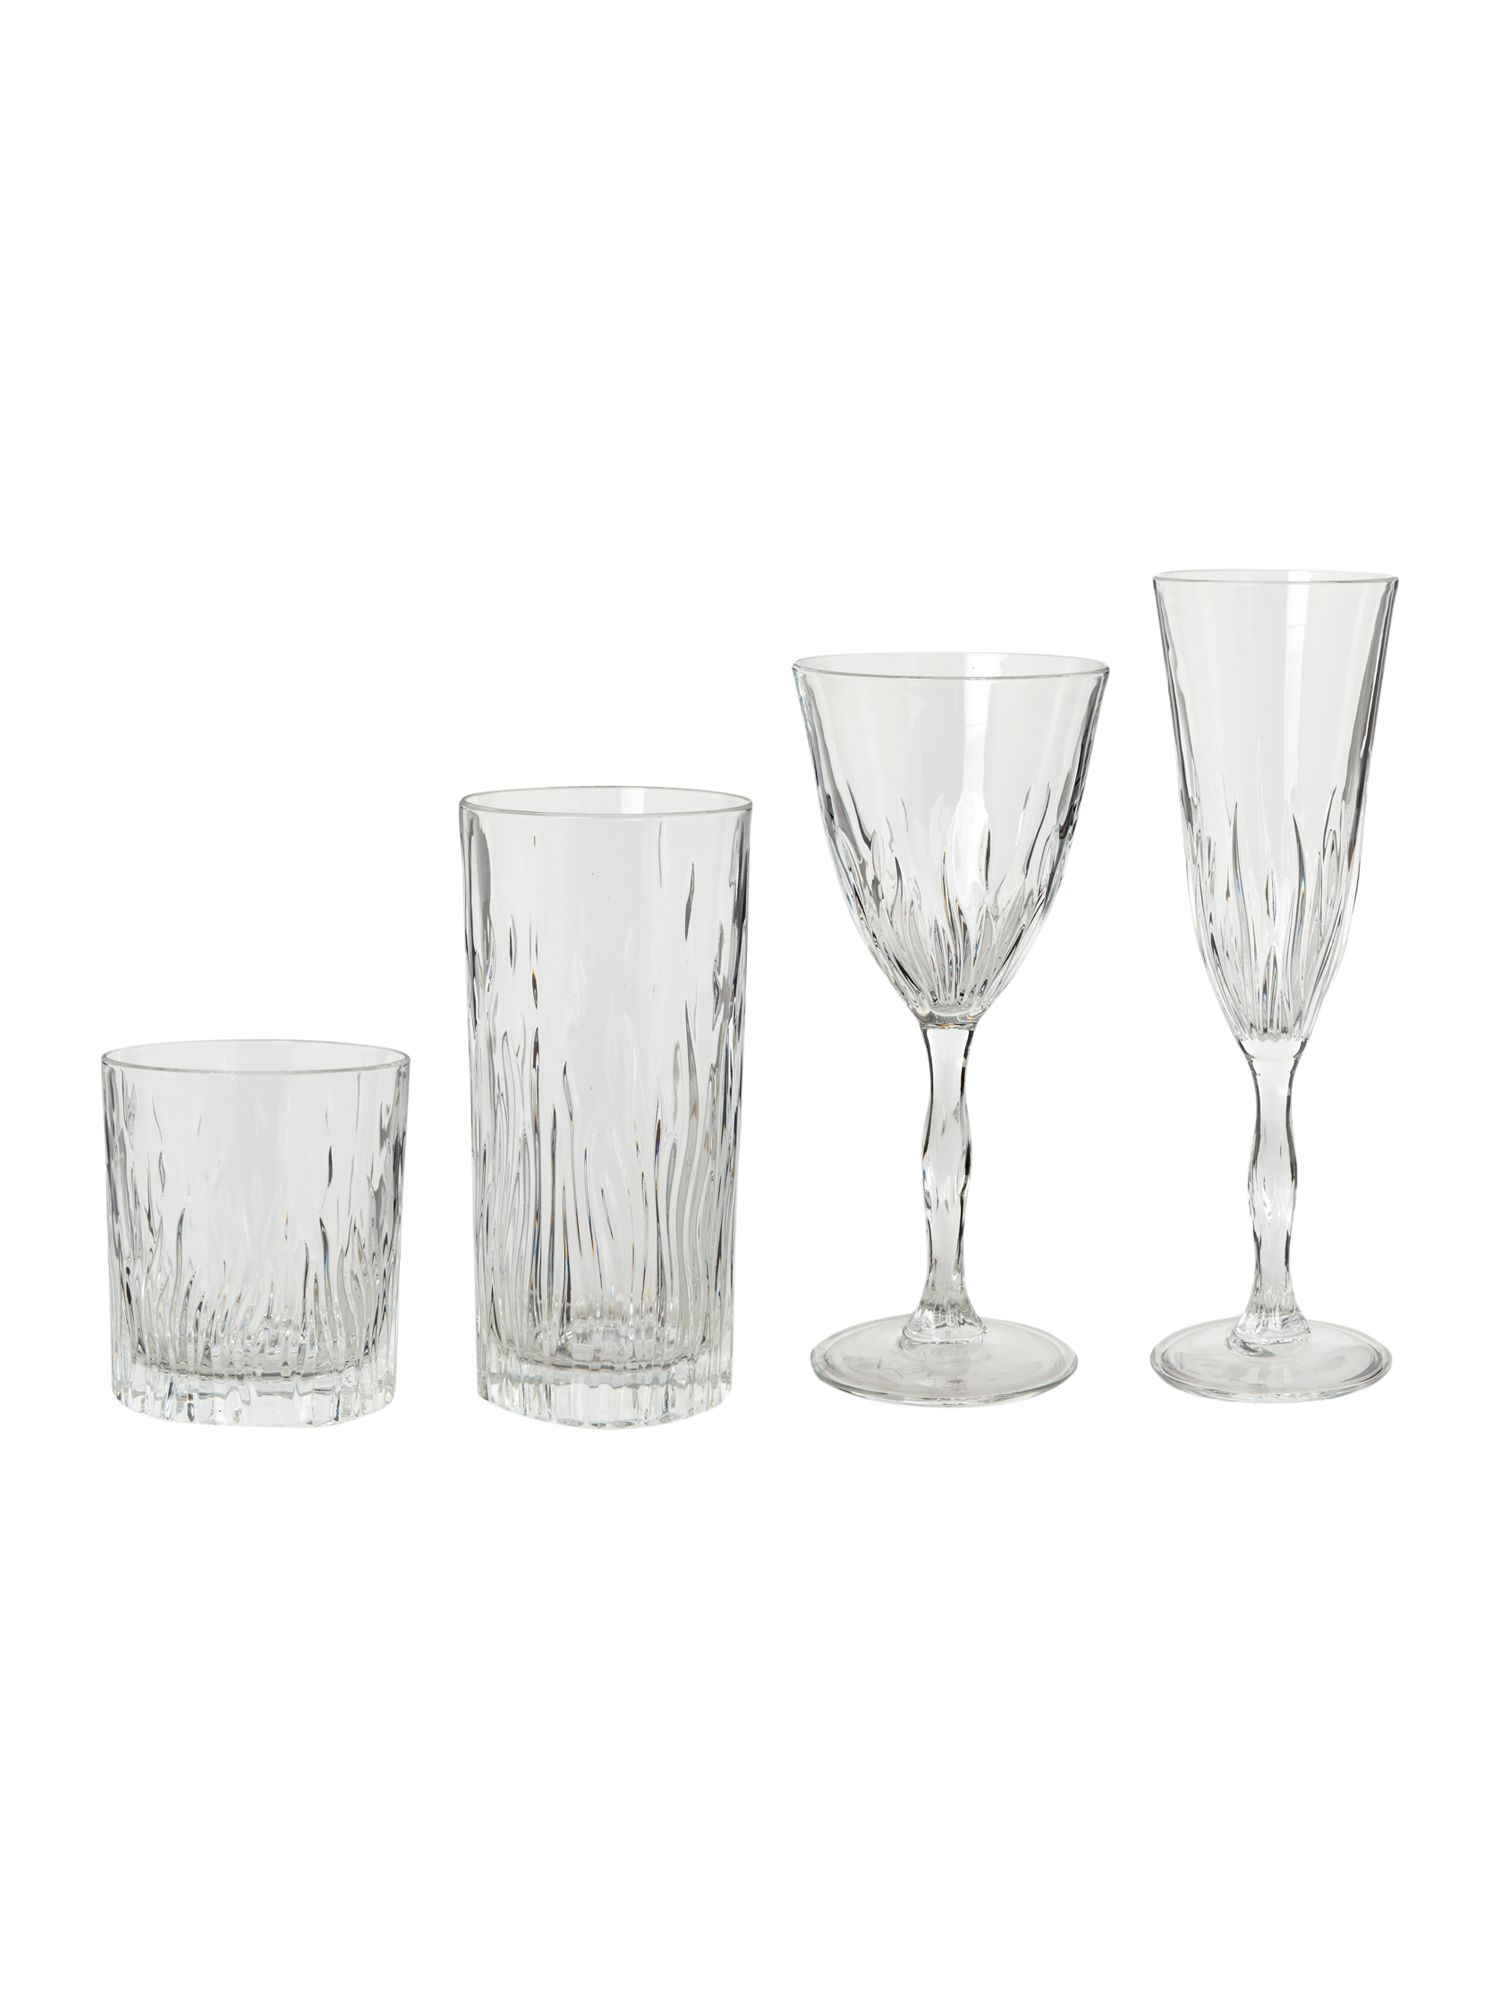 Fire crystal glassware sets